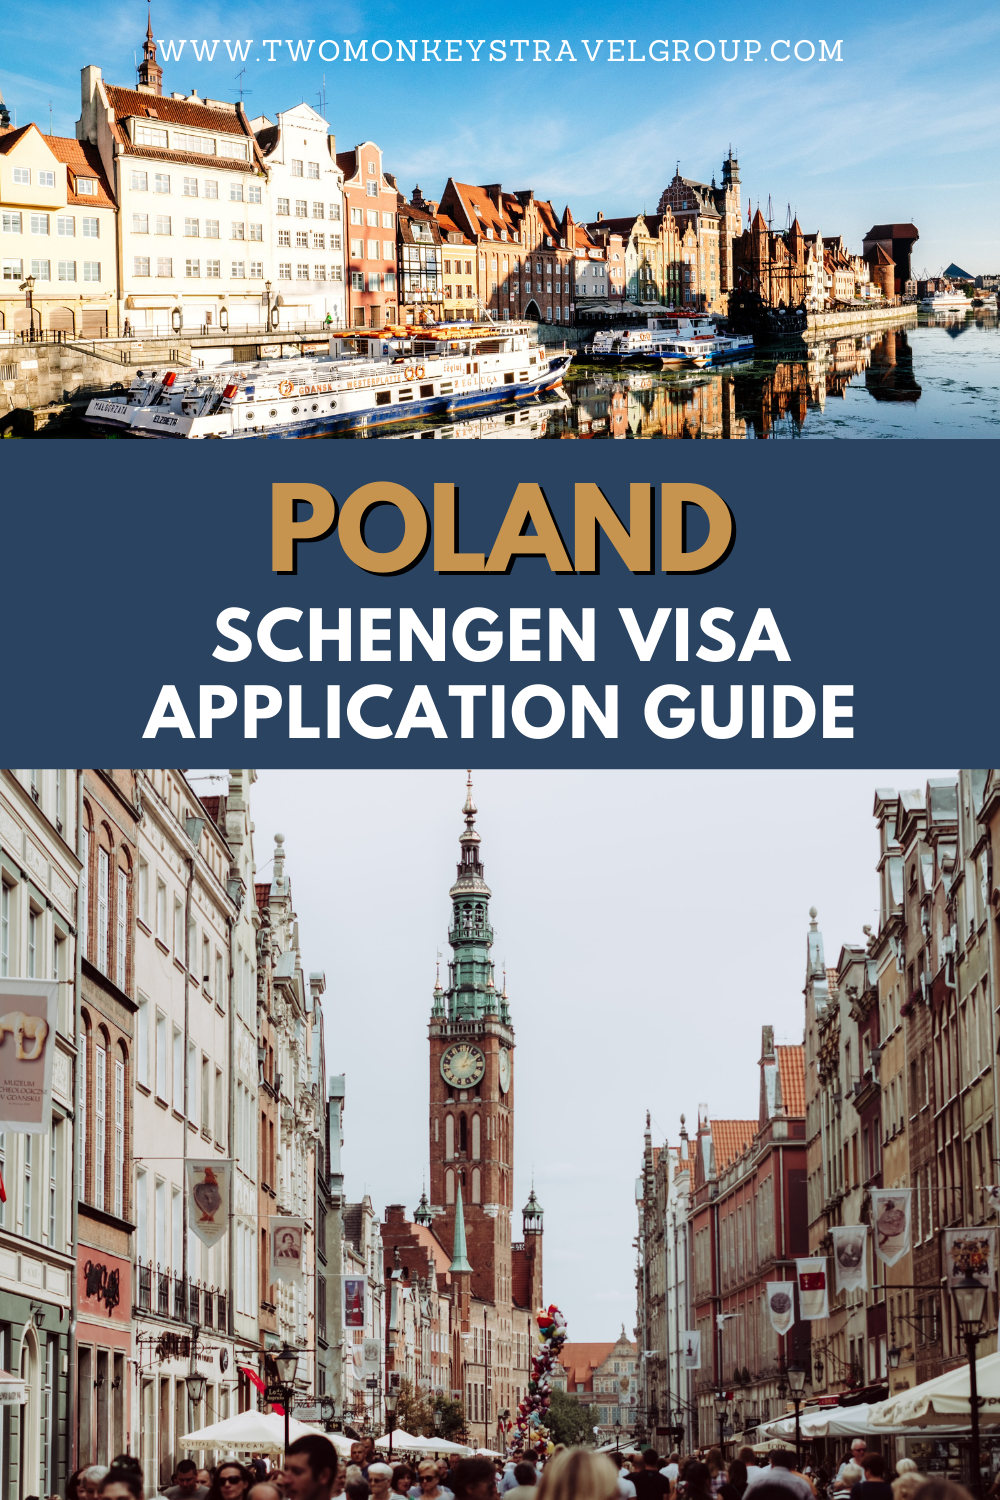 How to Apply for a Schengen Poland Visa for Filipinos